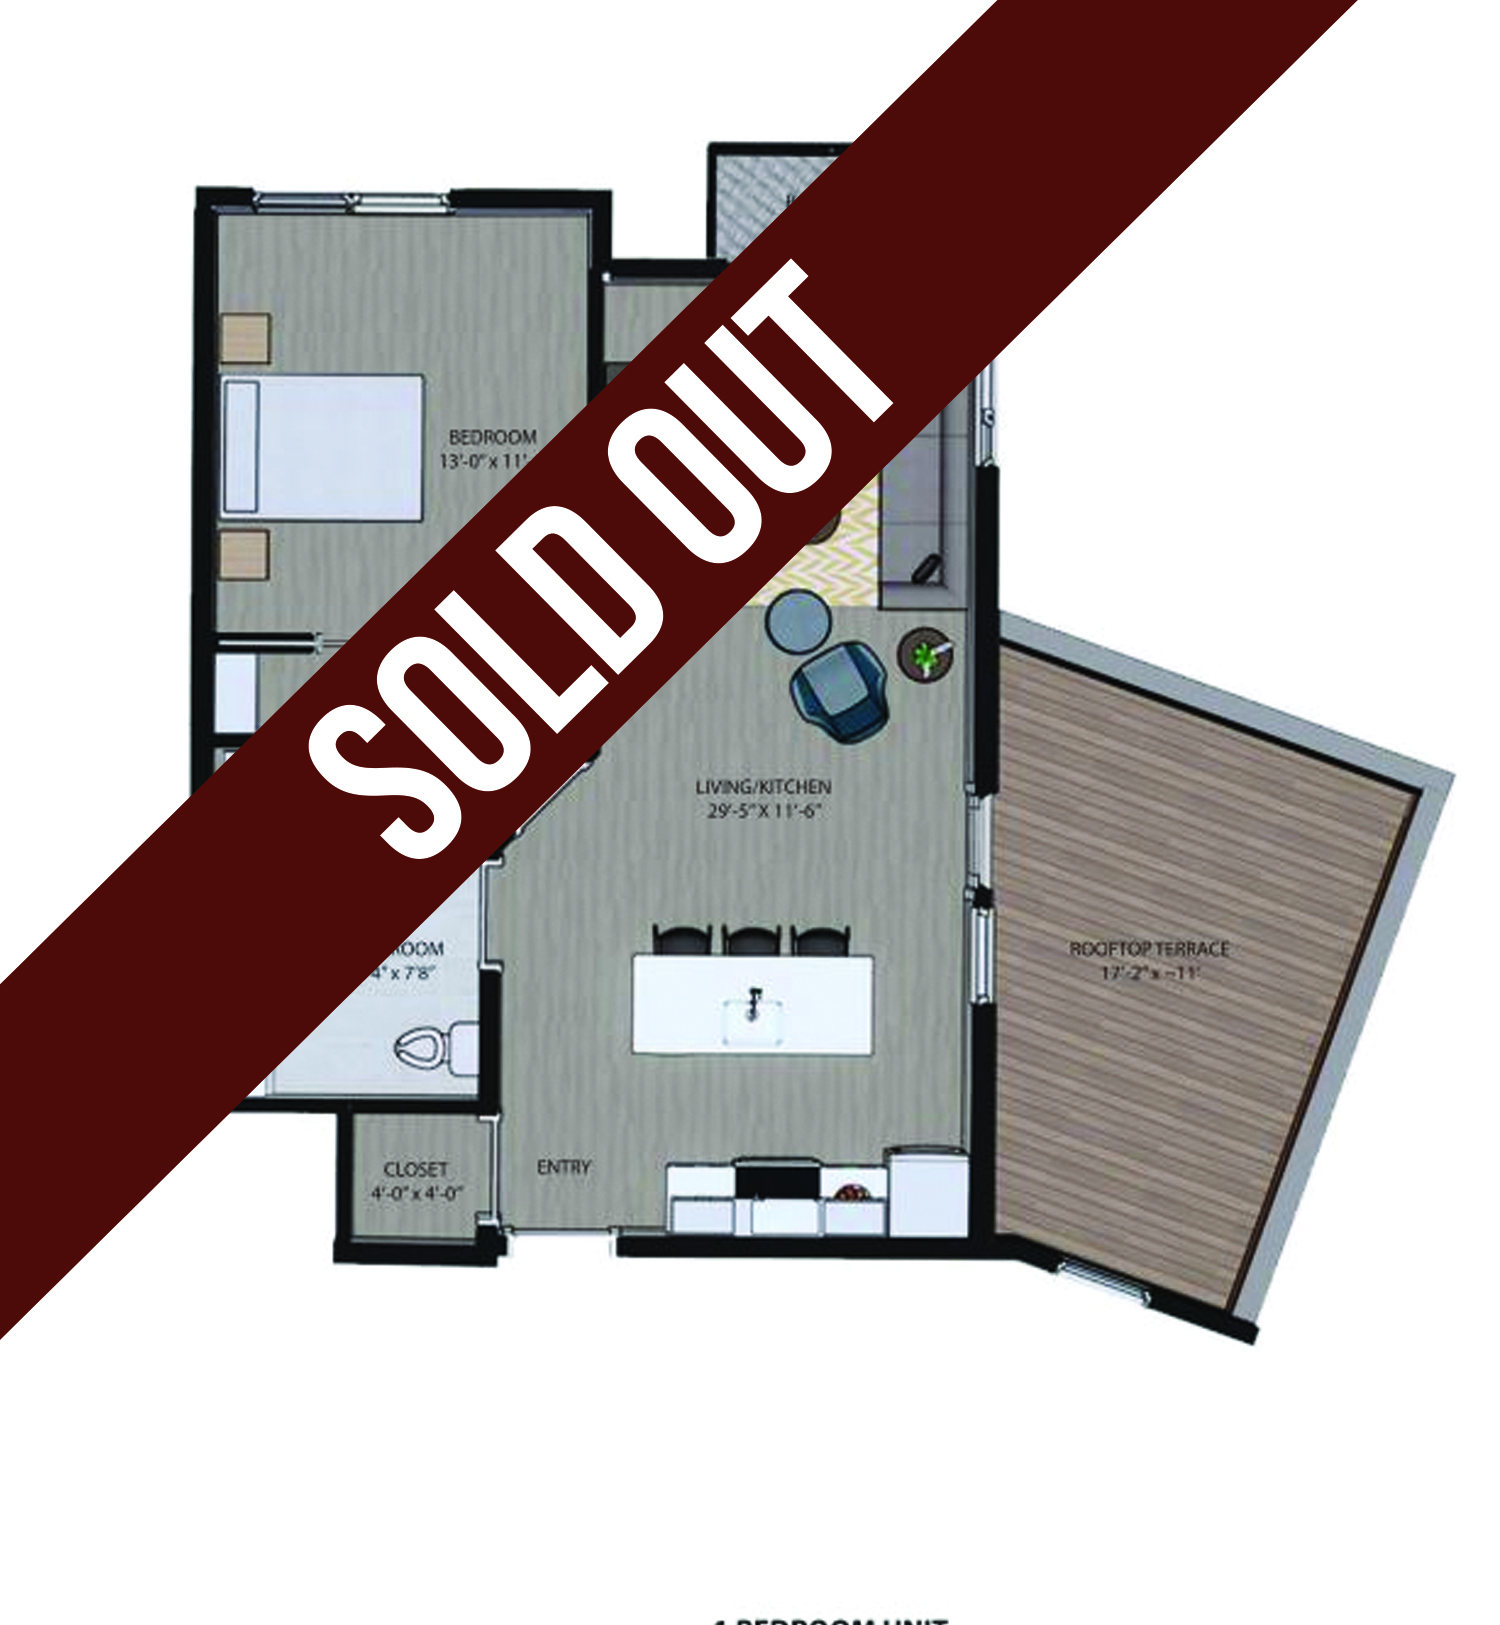 625 S. Goodman Apartments - Floorplan - One Bedroom with Roof Deck (A)